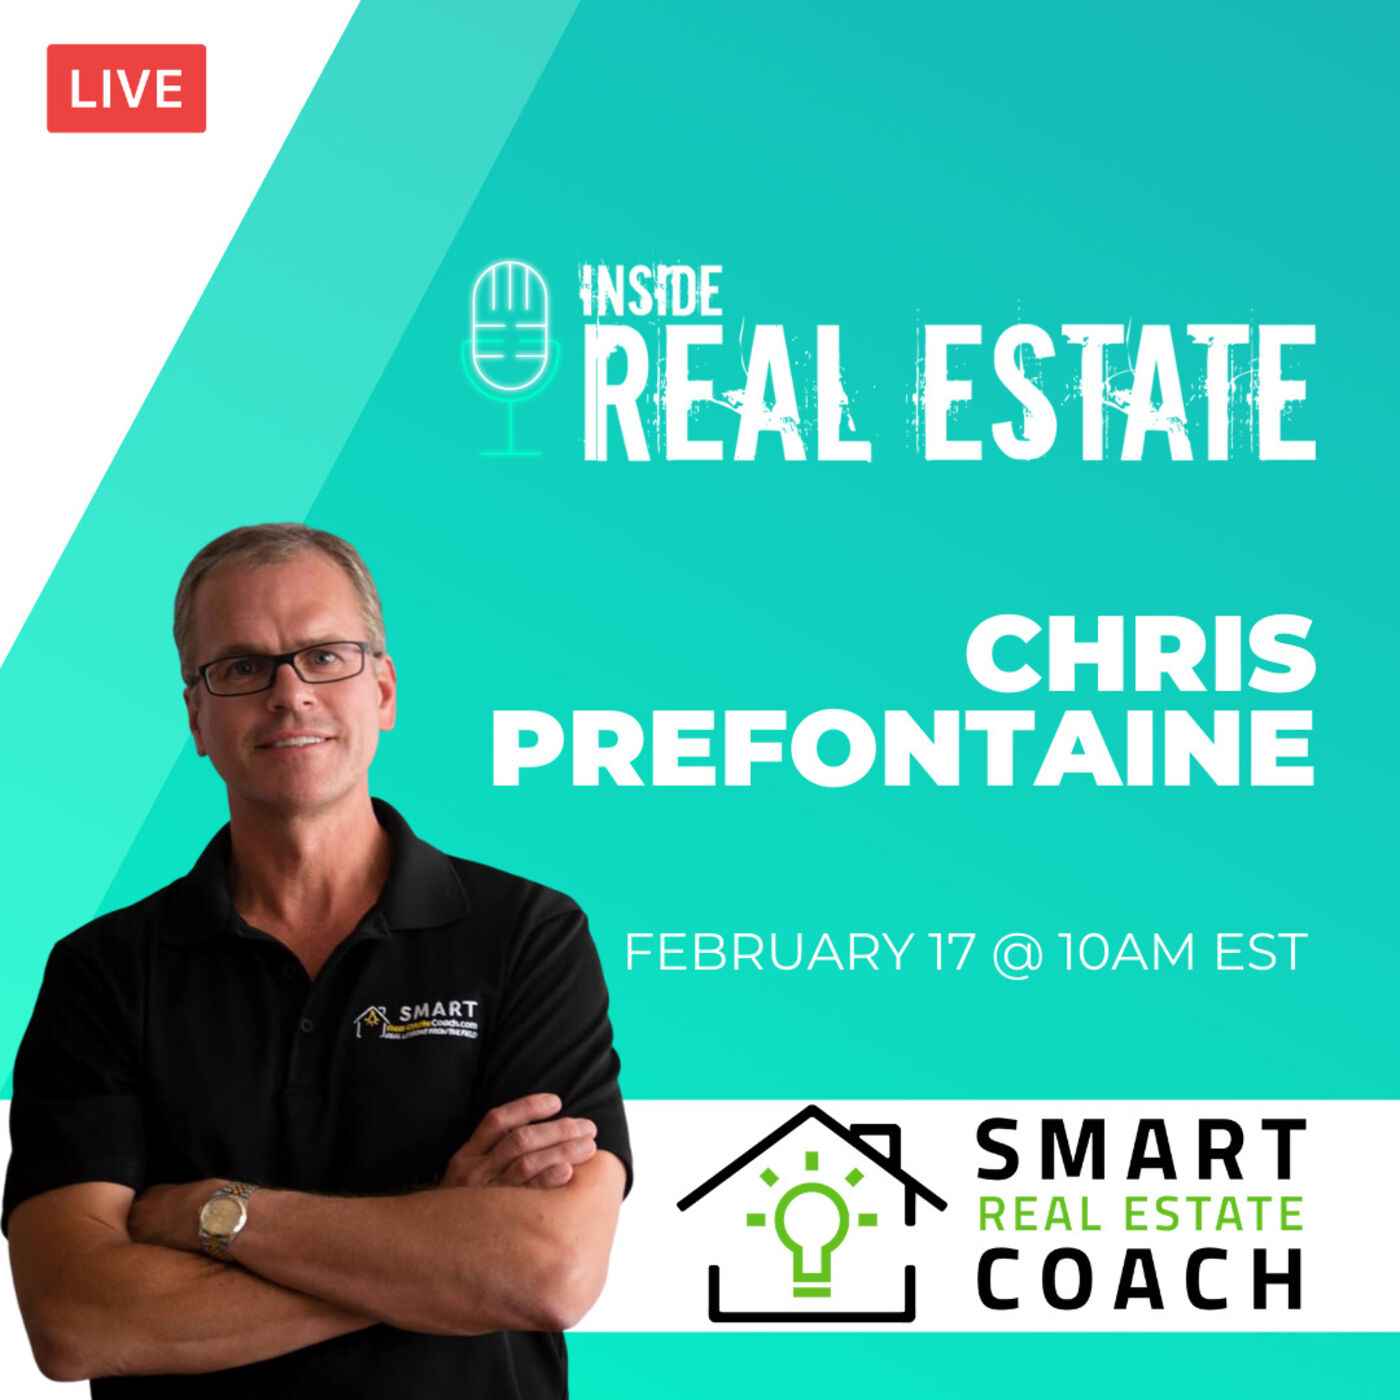 Chris Prefontaine, Smart Real Estate Coach - Money in Real Estate and More